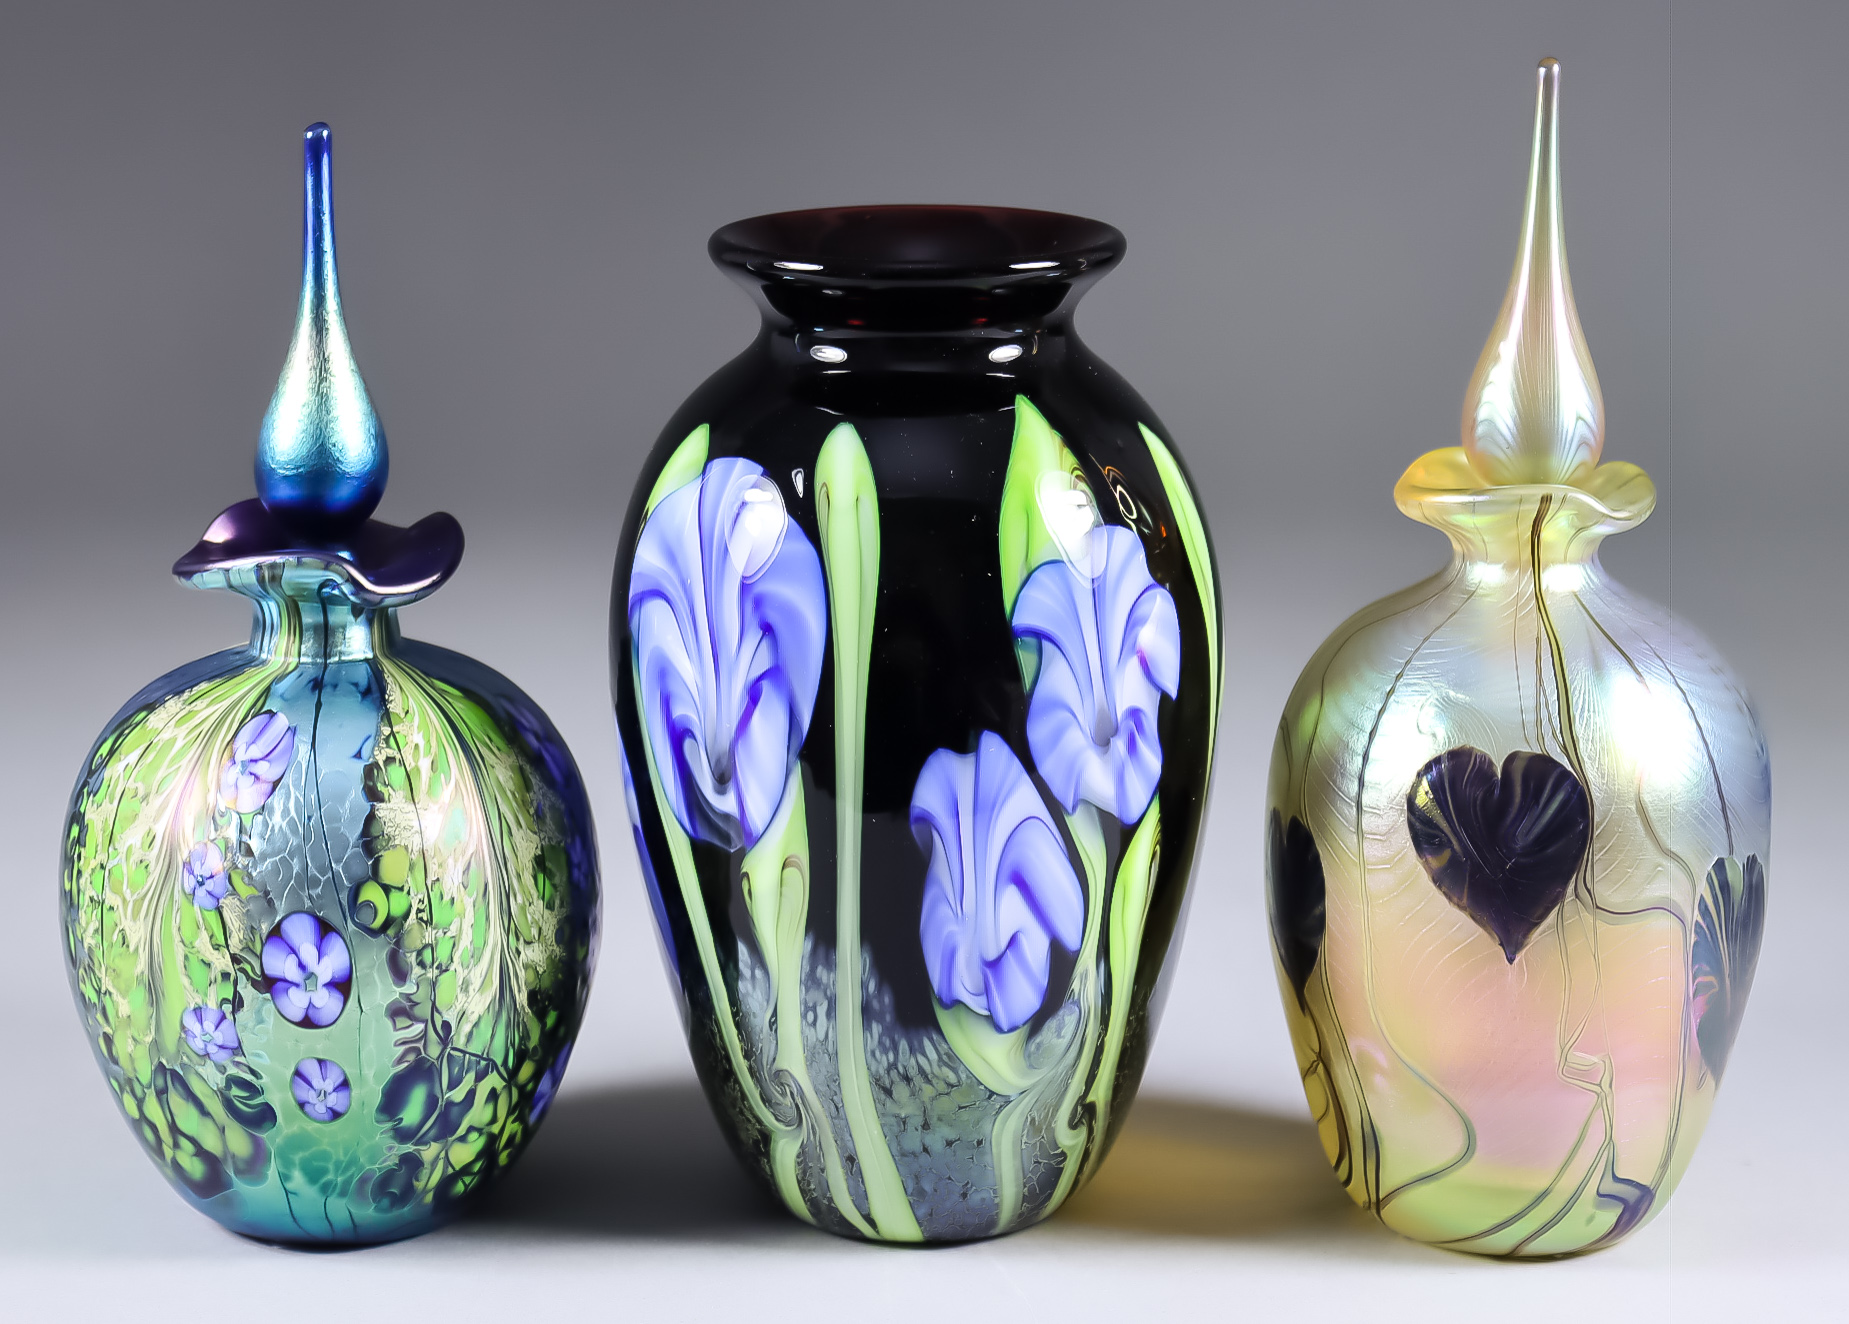 """An Okra Studio Glass Vase, 2002, with """"Morning Glory"""" design, 6ins high, a perfume bottle with """"Gold"""